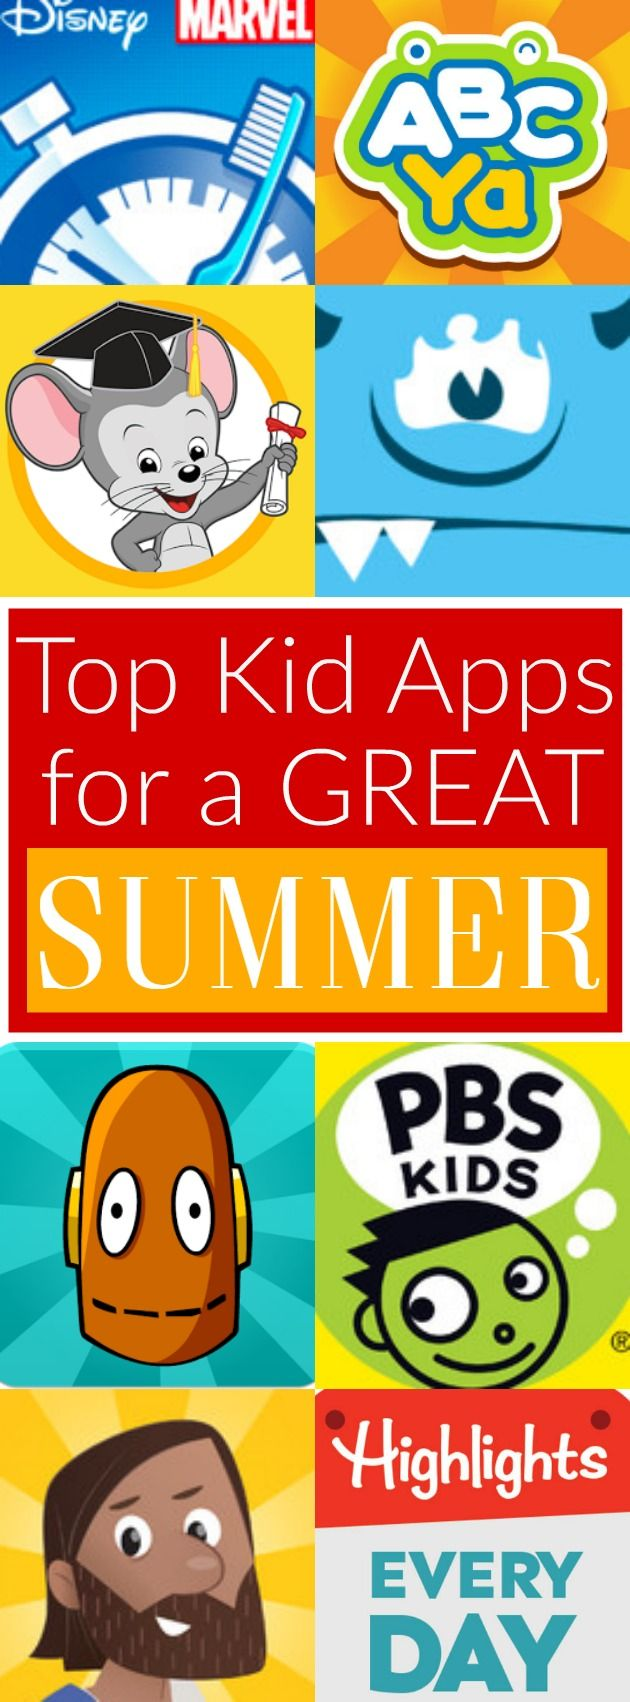 Top Kid Apps for a Great Summer